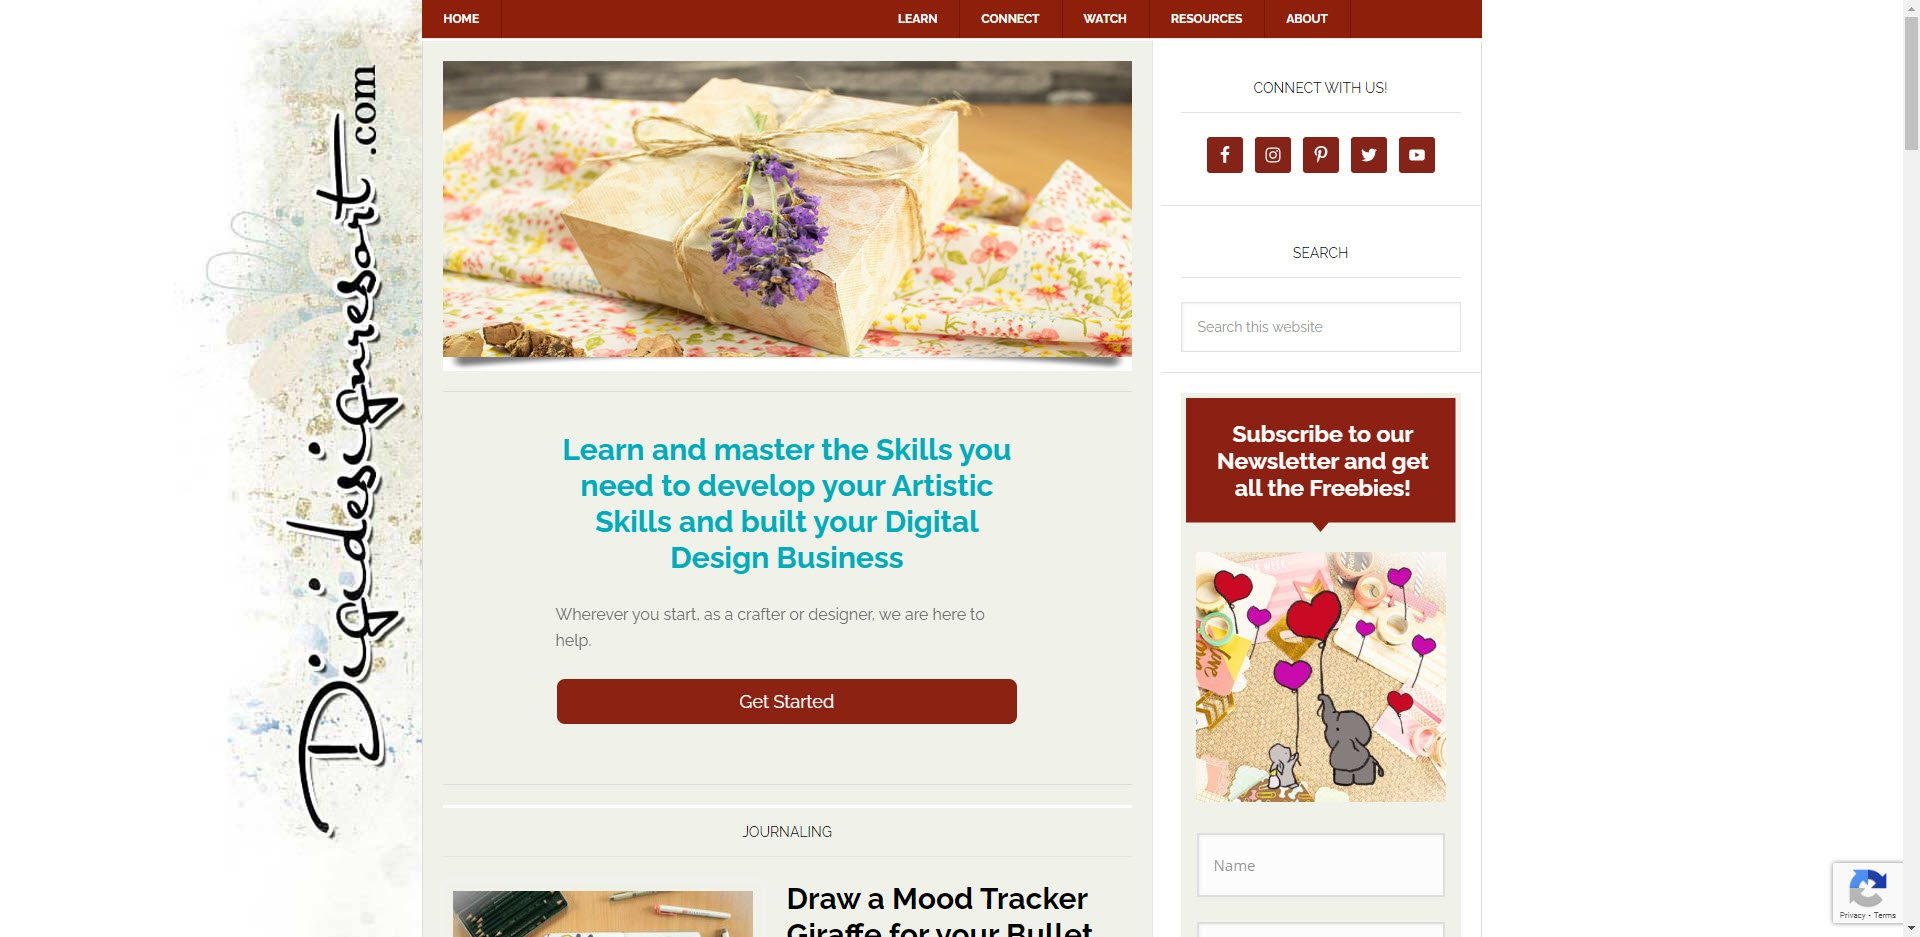 Scrapbooking Affiliate Programs - Digitaldesignresort.com